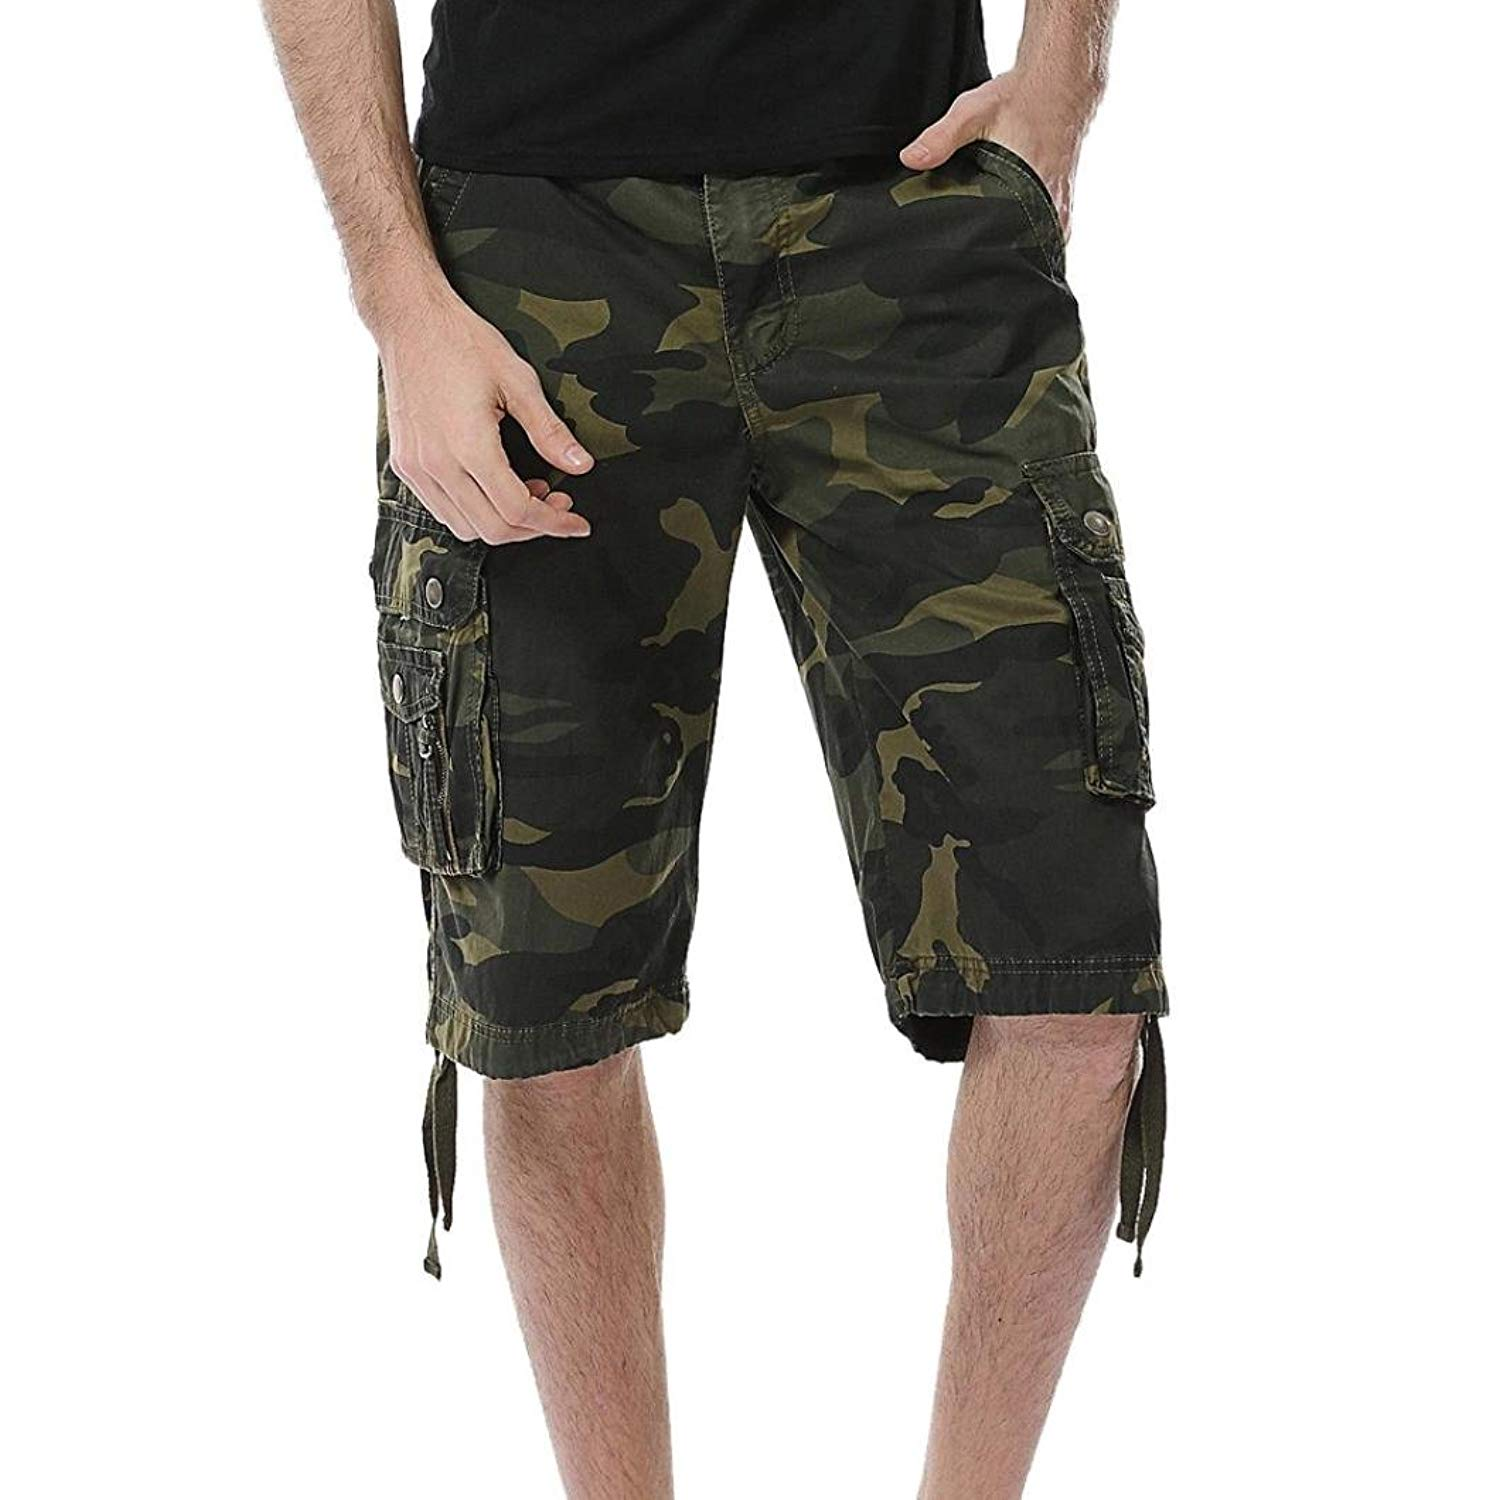 a568188c9e Get Quotations · Scaling ☸ Men's Fashion Cargo Shorts Casual Loose Camo  Short Pants Elastic Waist Beach Gym Sport